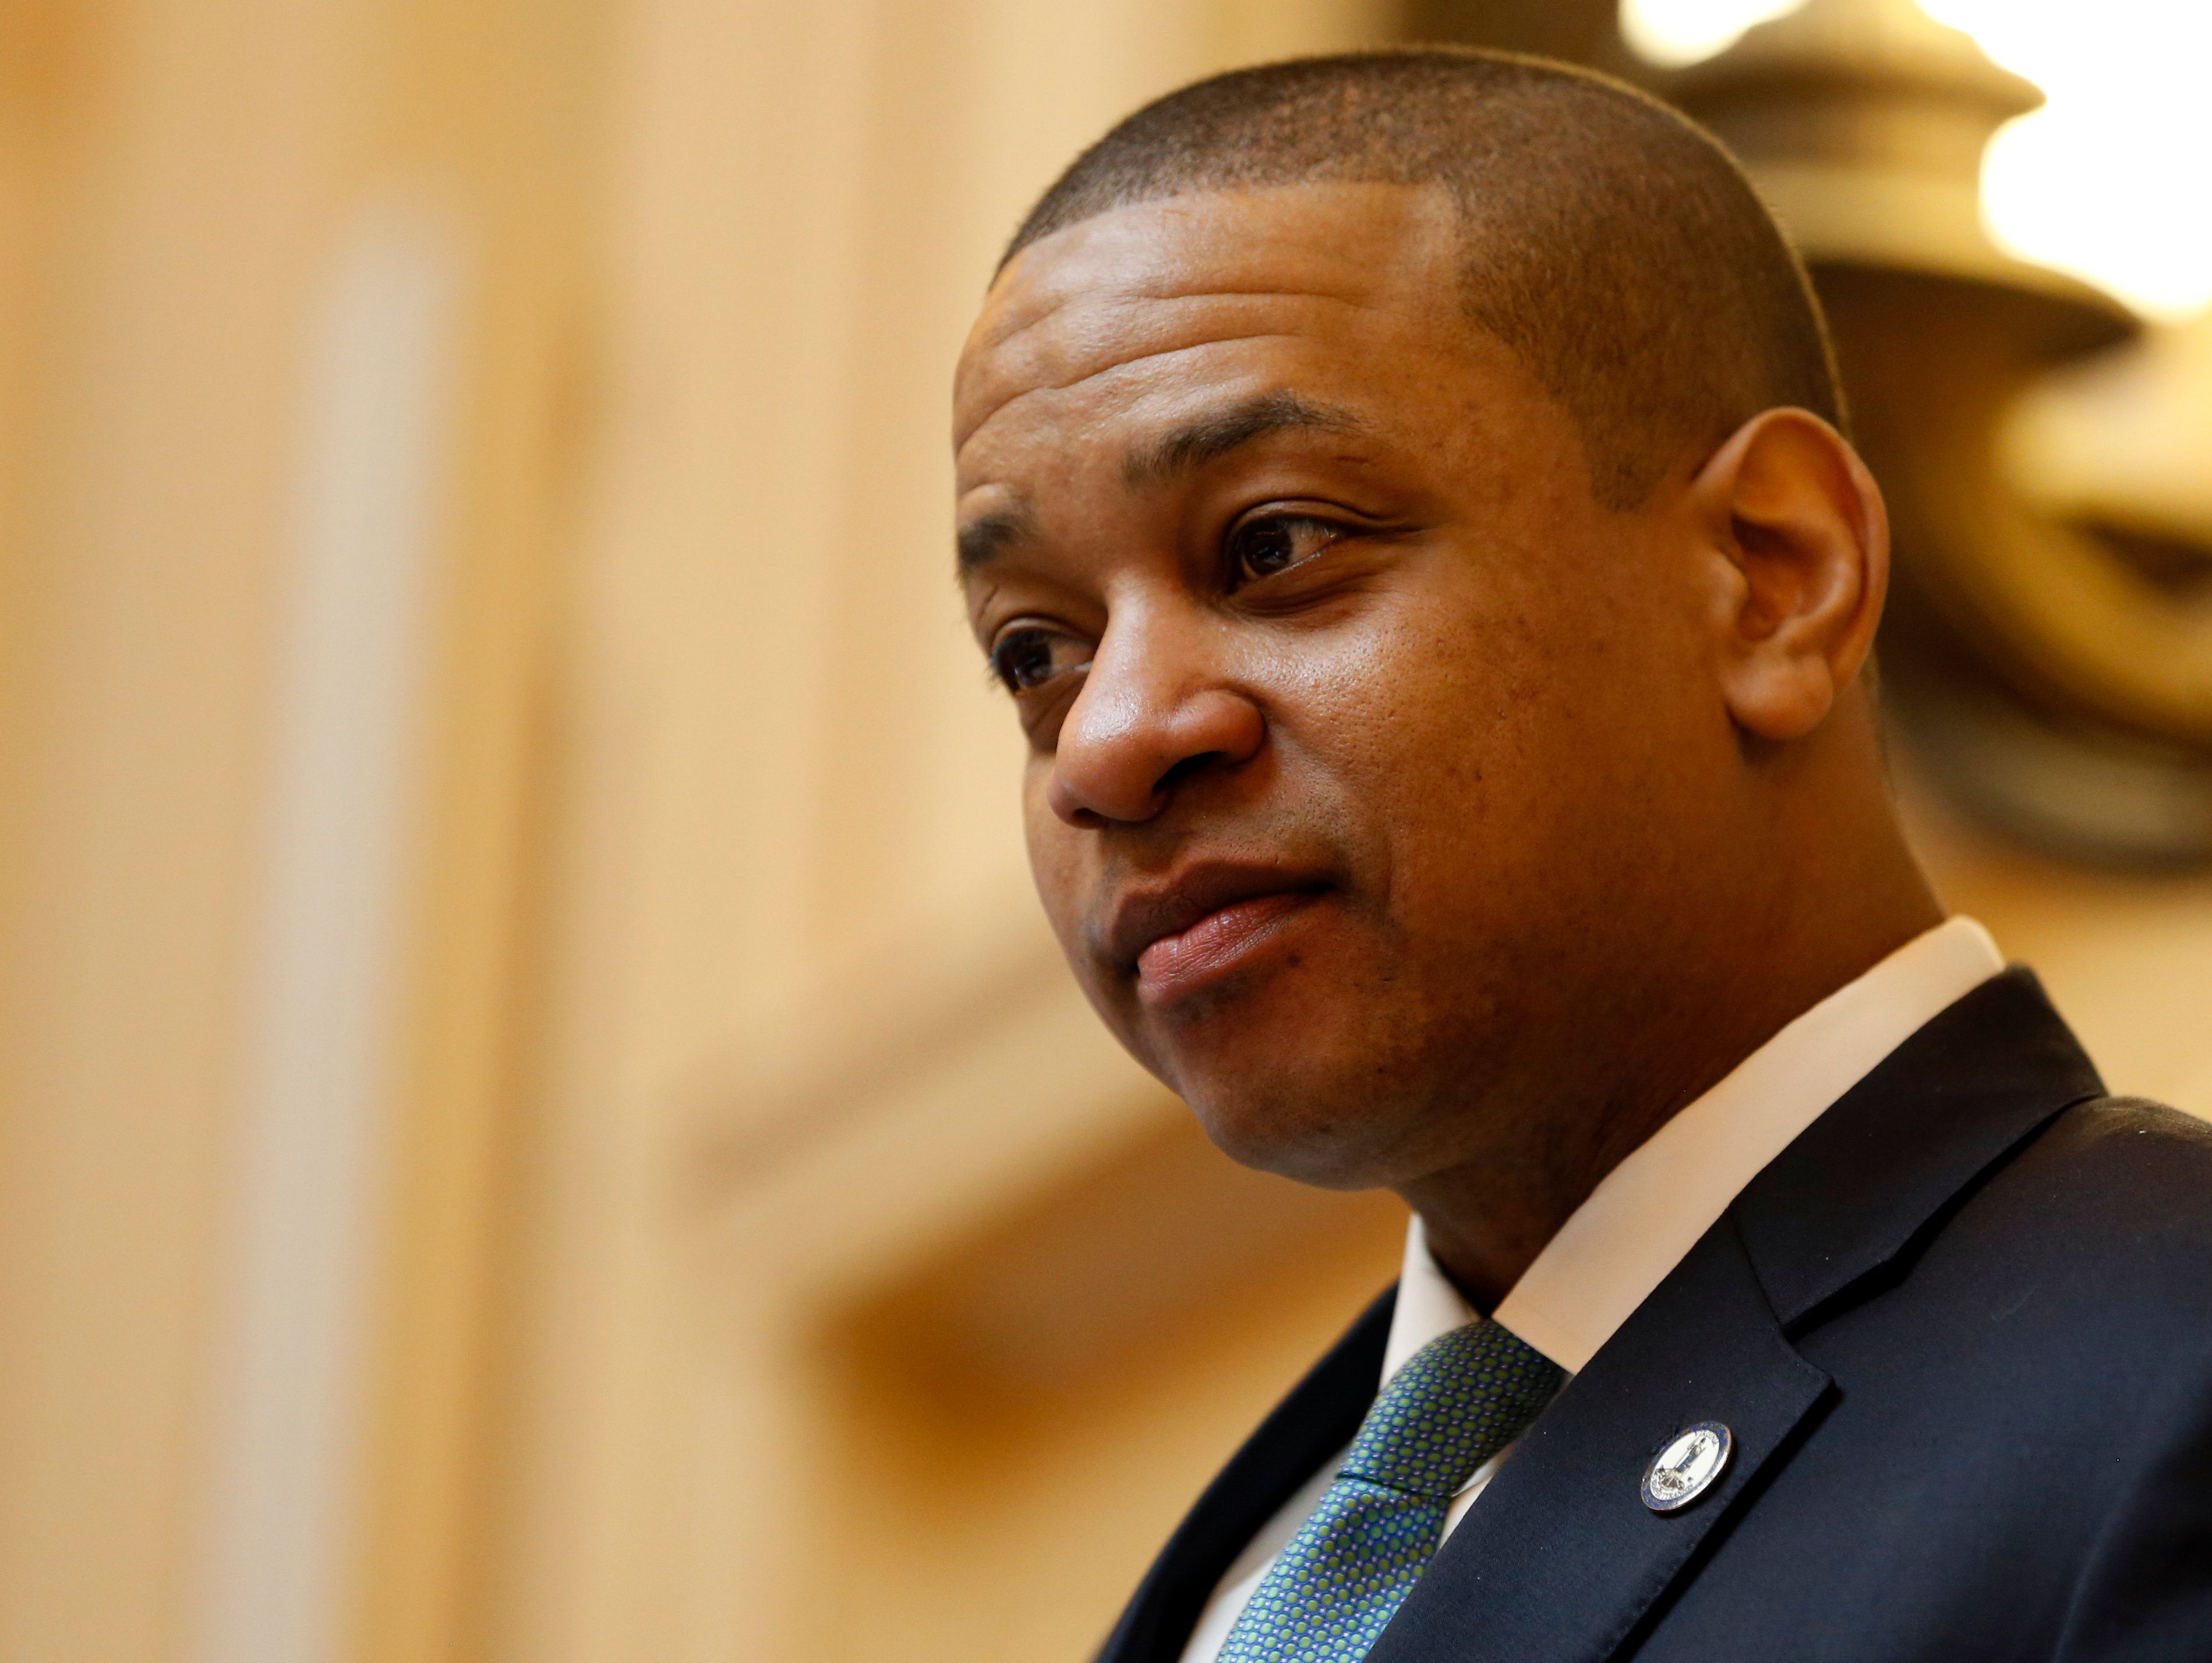 Virginia Lt. Gov. Justin Fairfax, seen presiding over the state Senate in Richmond on Monday, faces calls to resign and threa